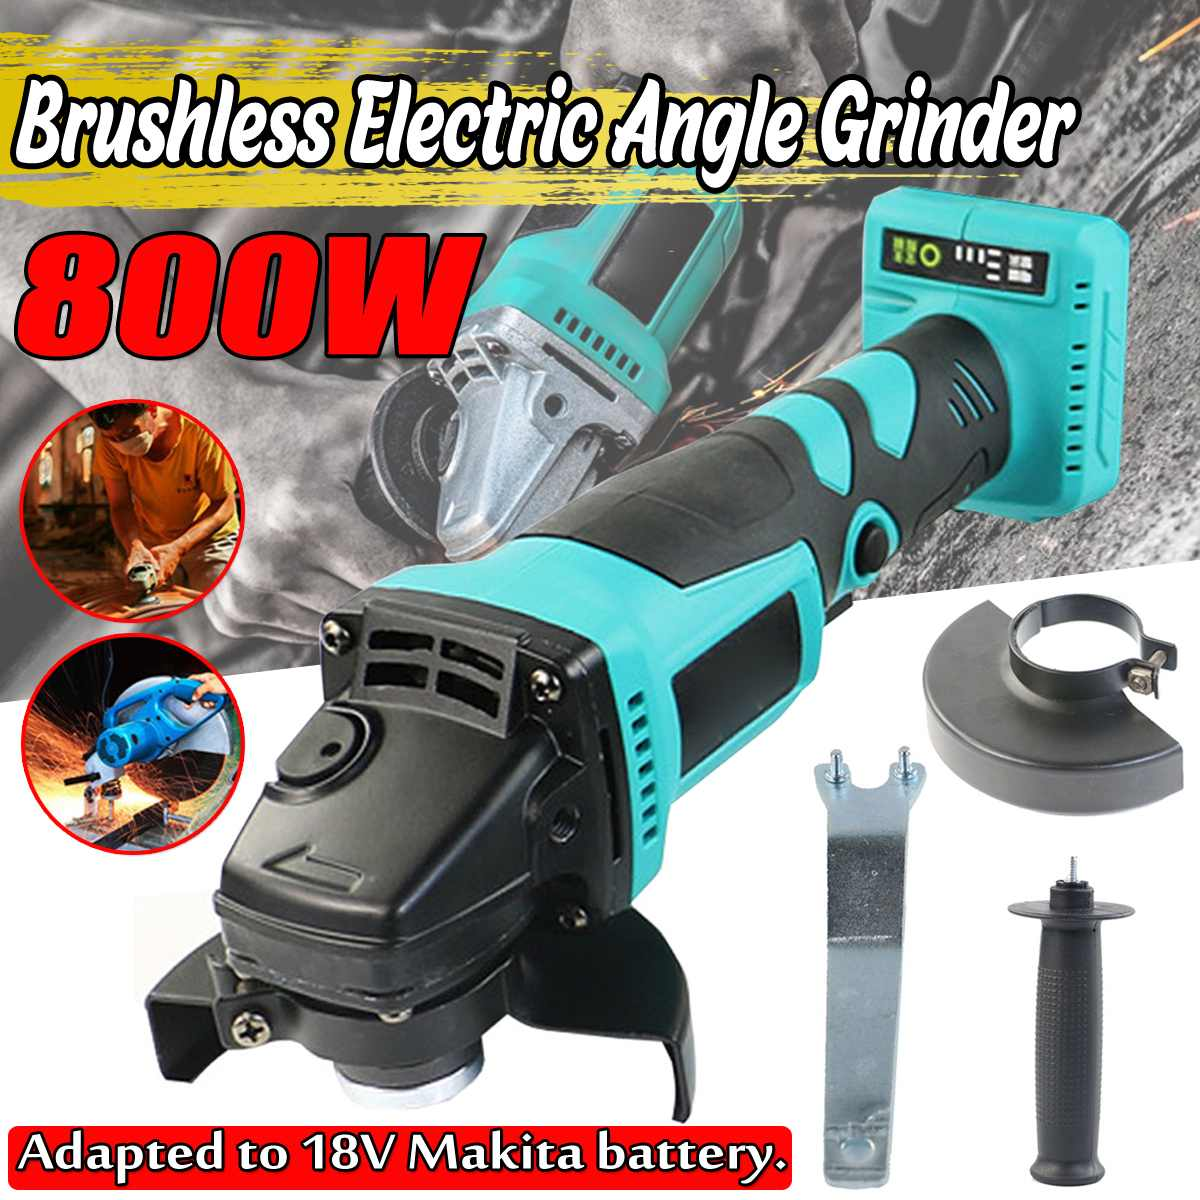 Brushless Electric Angle Grinder Rechargable Cordless 100mm Grinding Machine Cutting Woodworking Tool For Makita Battery 18V